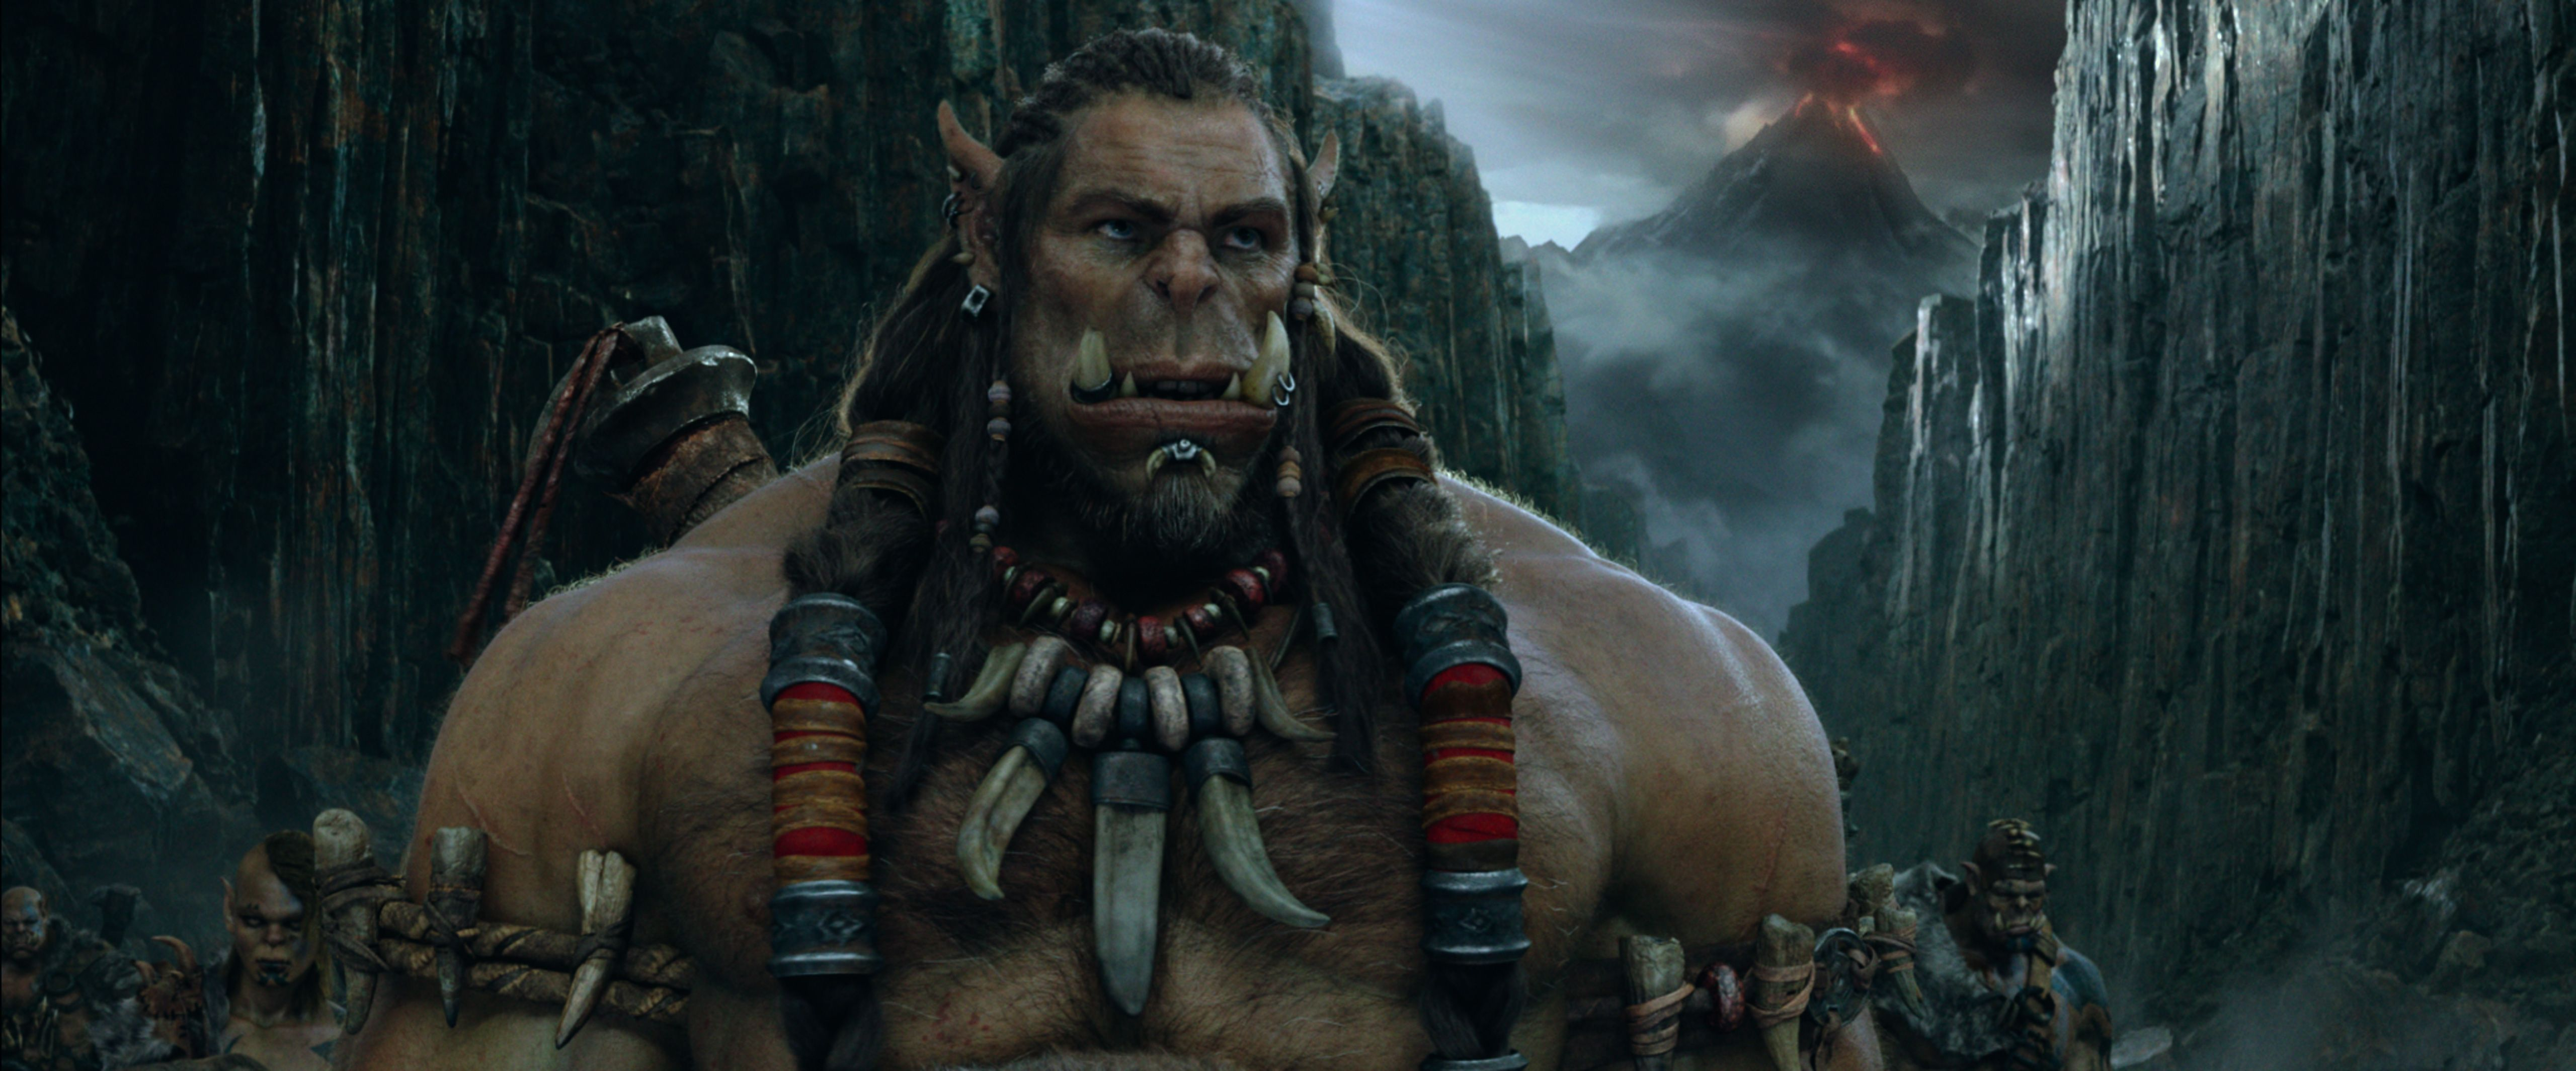 Was the CGI in the Warcraft trailer really that bad? : movies